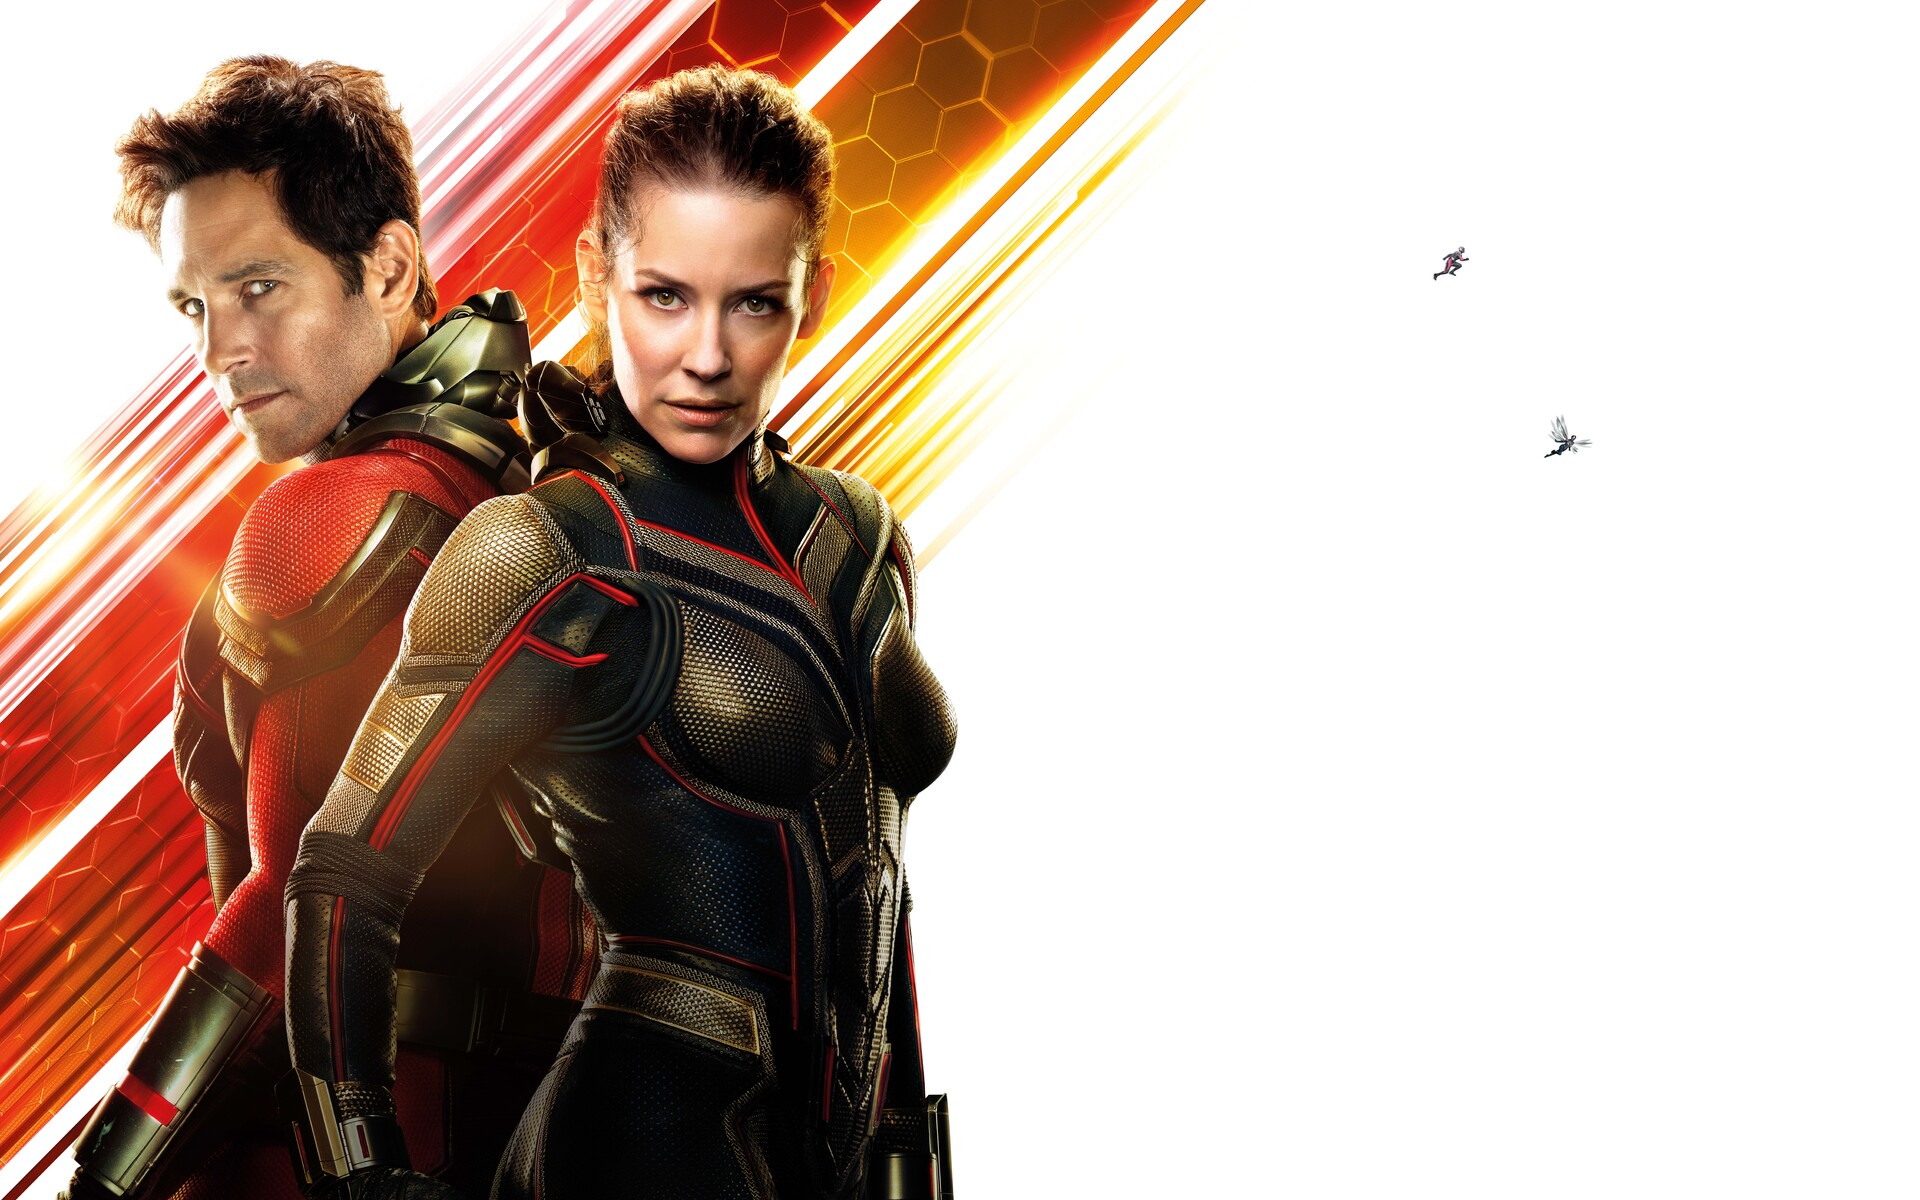 antman-and-the-wasp-12k-v3.jpg